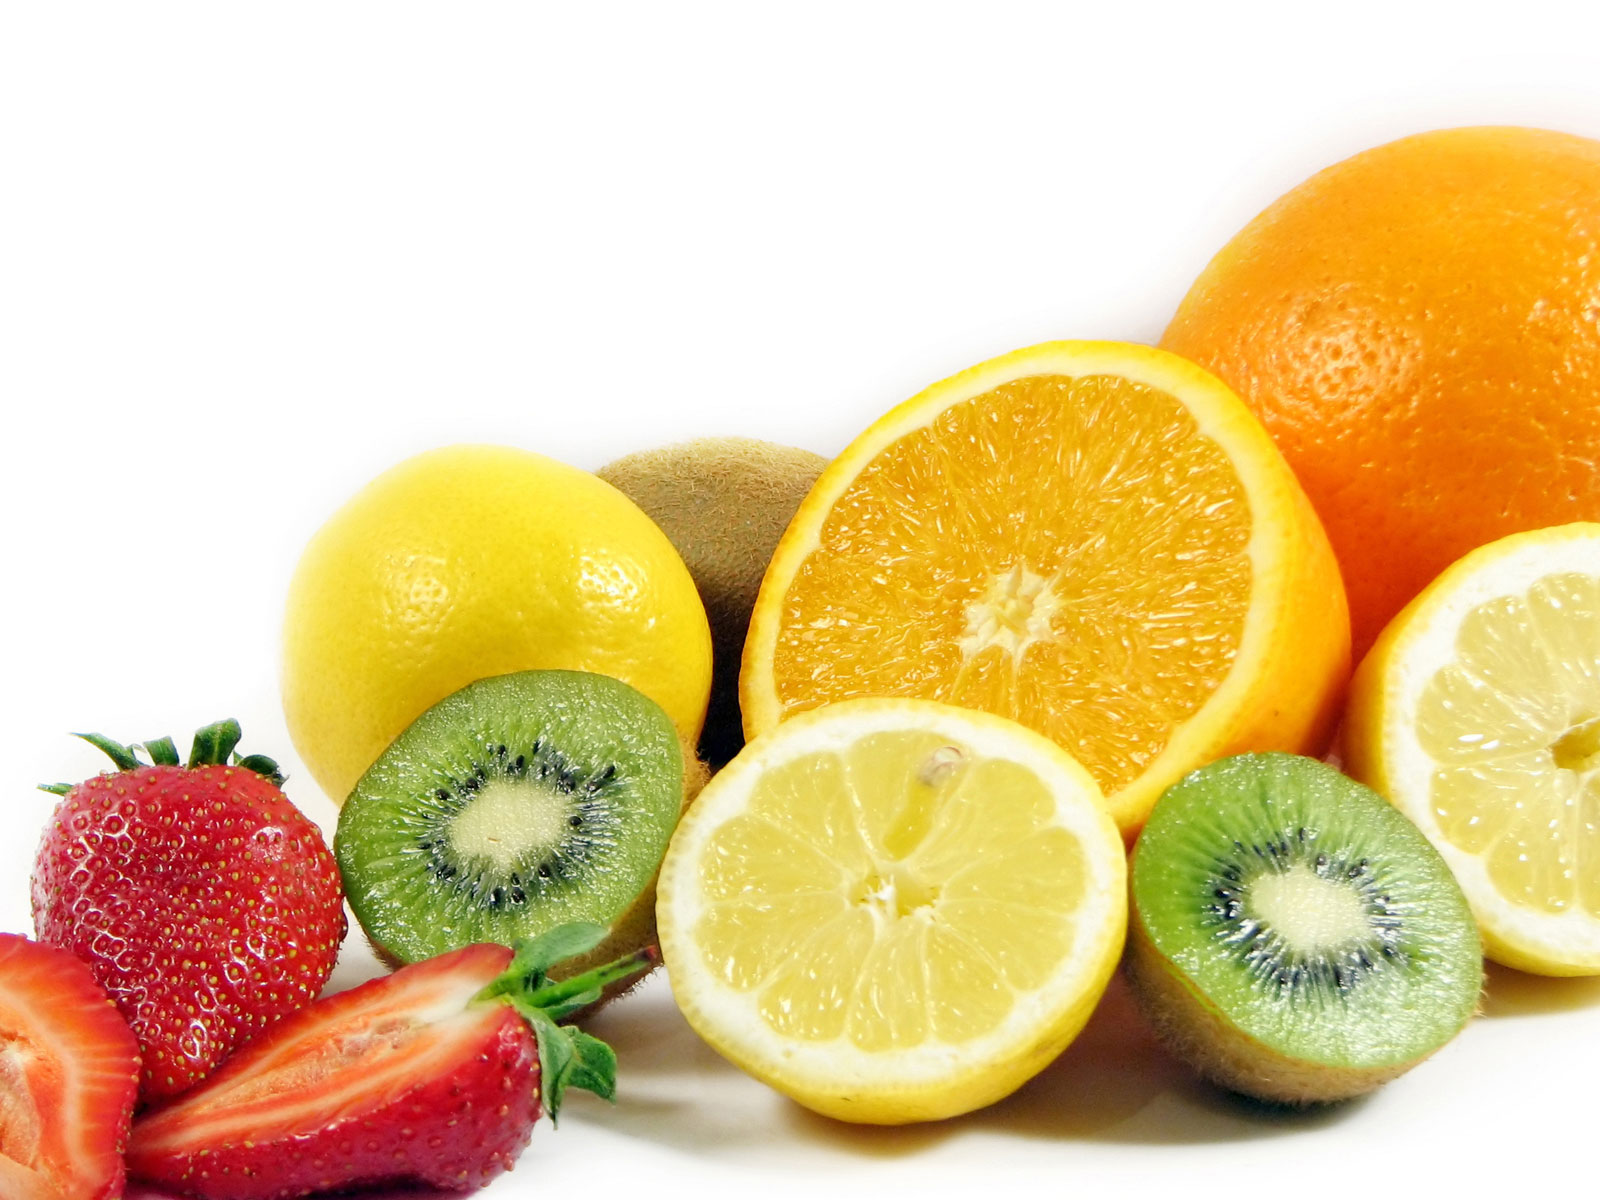 Fresh Fruits Wallpapers Desktop Mix Fruits Mobile Wallpaper 1600x1200